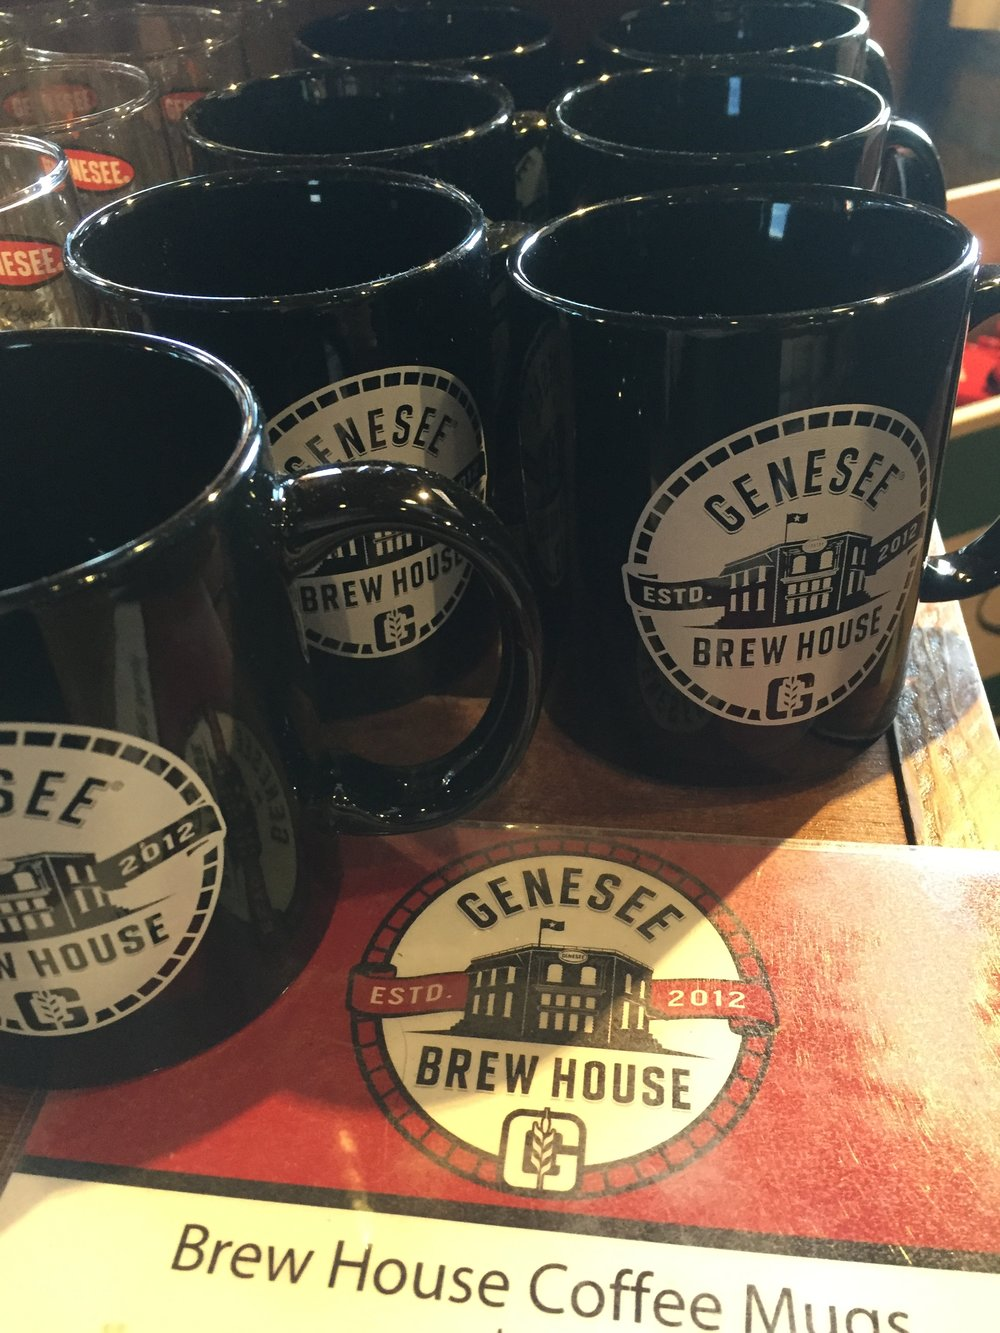 Genesee Brew House Coffee Mugs